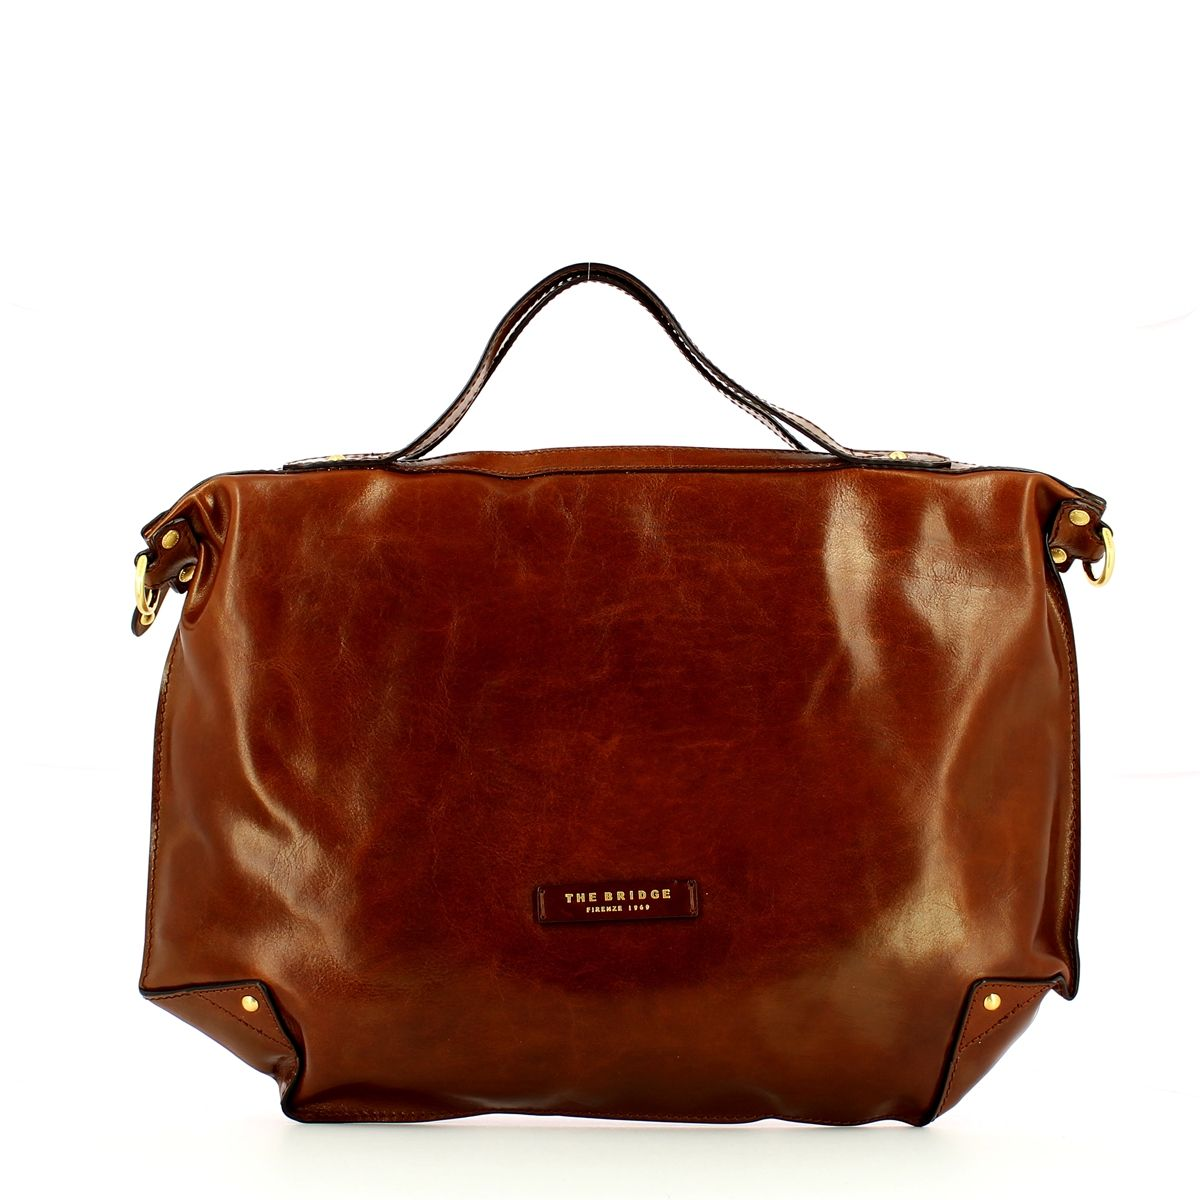 Unica Soft Top Handle Bag The Bridge MARRONE TB 14